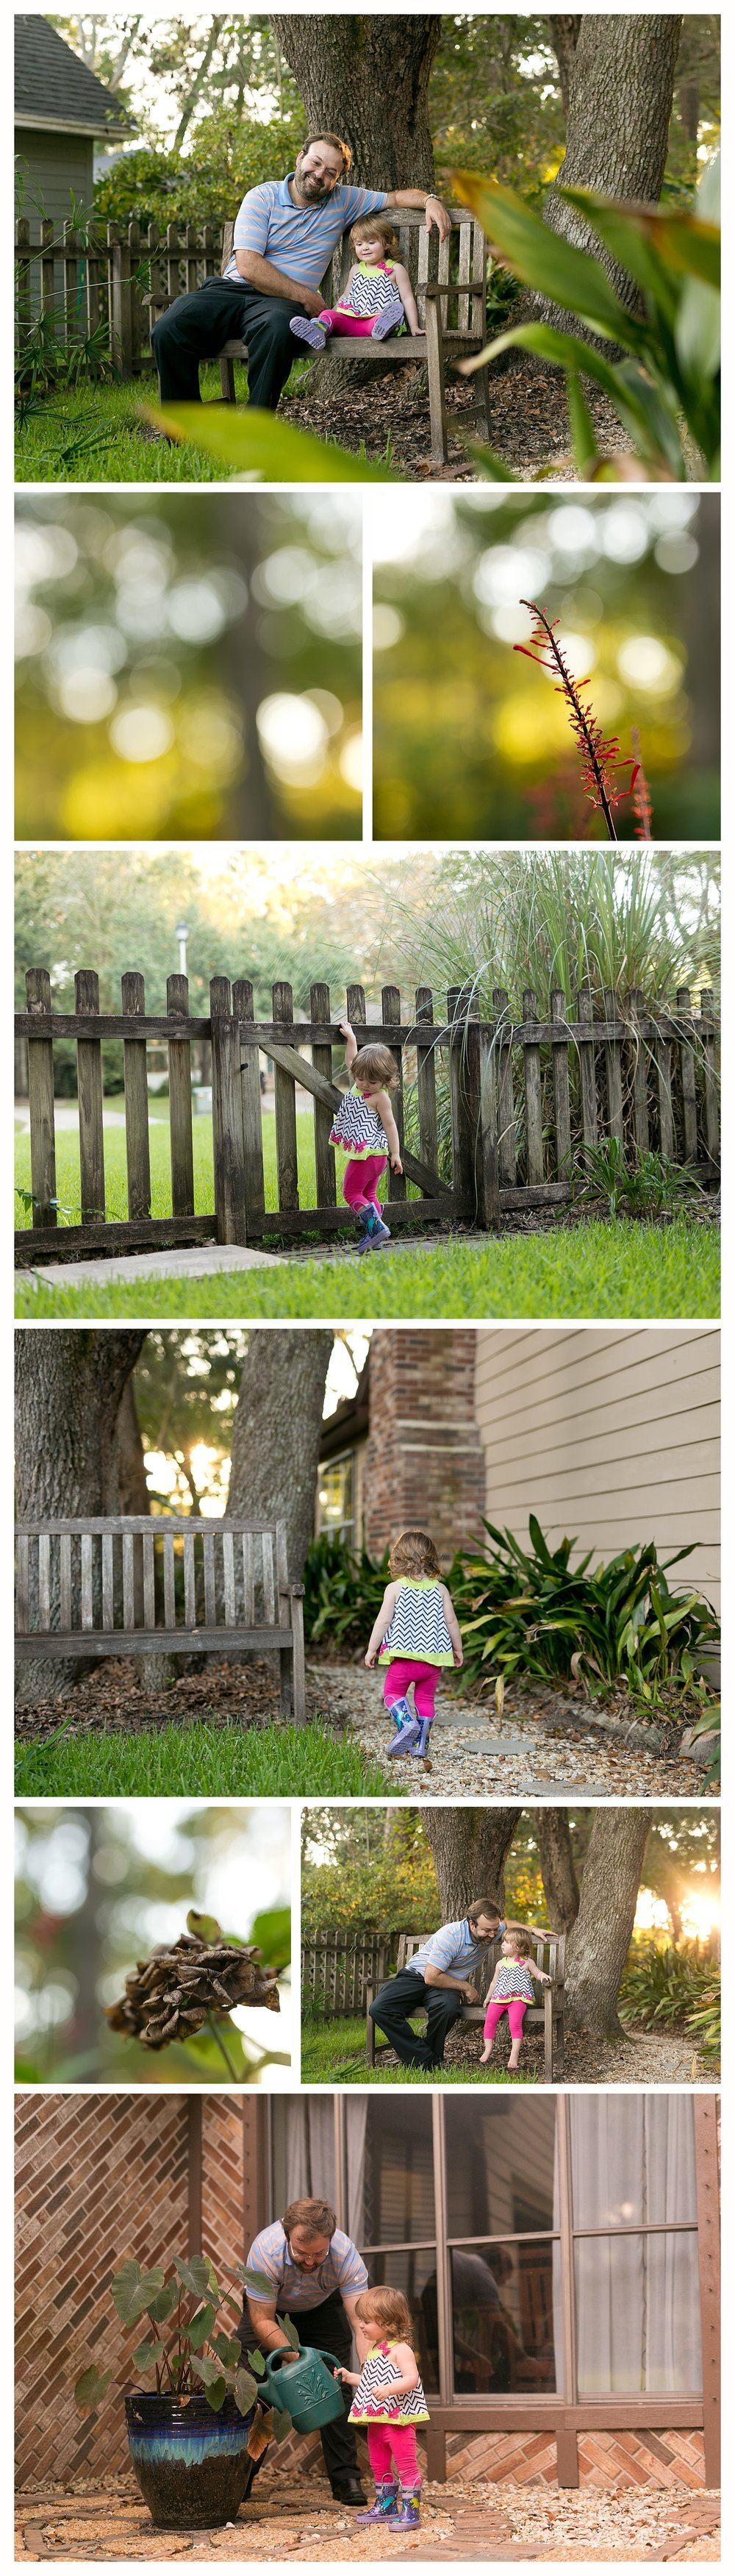 toddler girl in yard with daddy, helping water plants, wearing rain boots